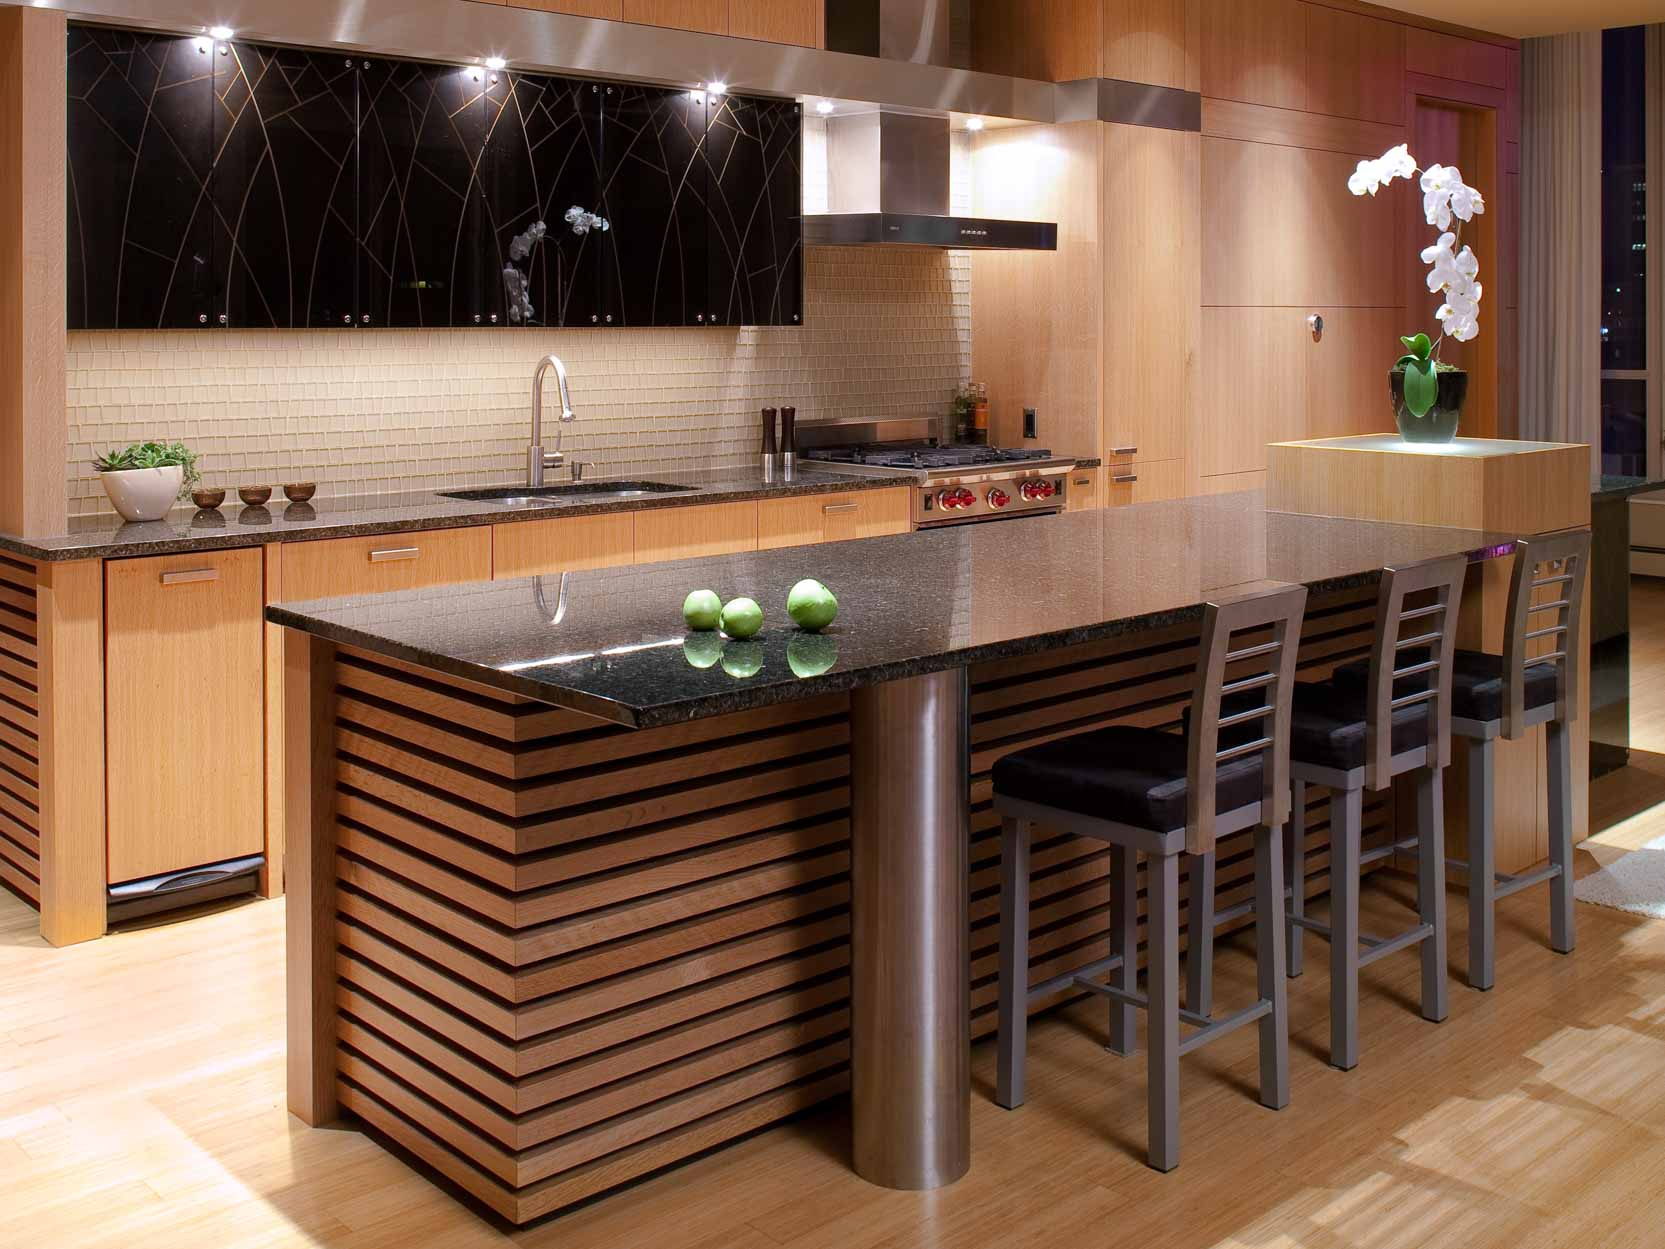 Arteriors kitchen designers kitchen design remodeling minnesota - Kitchen design minneapolis ...